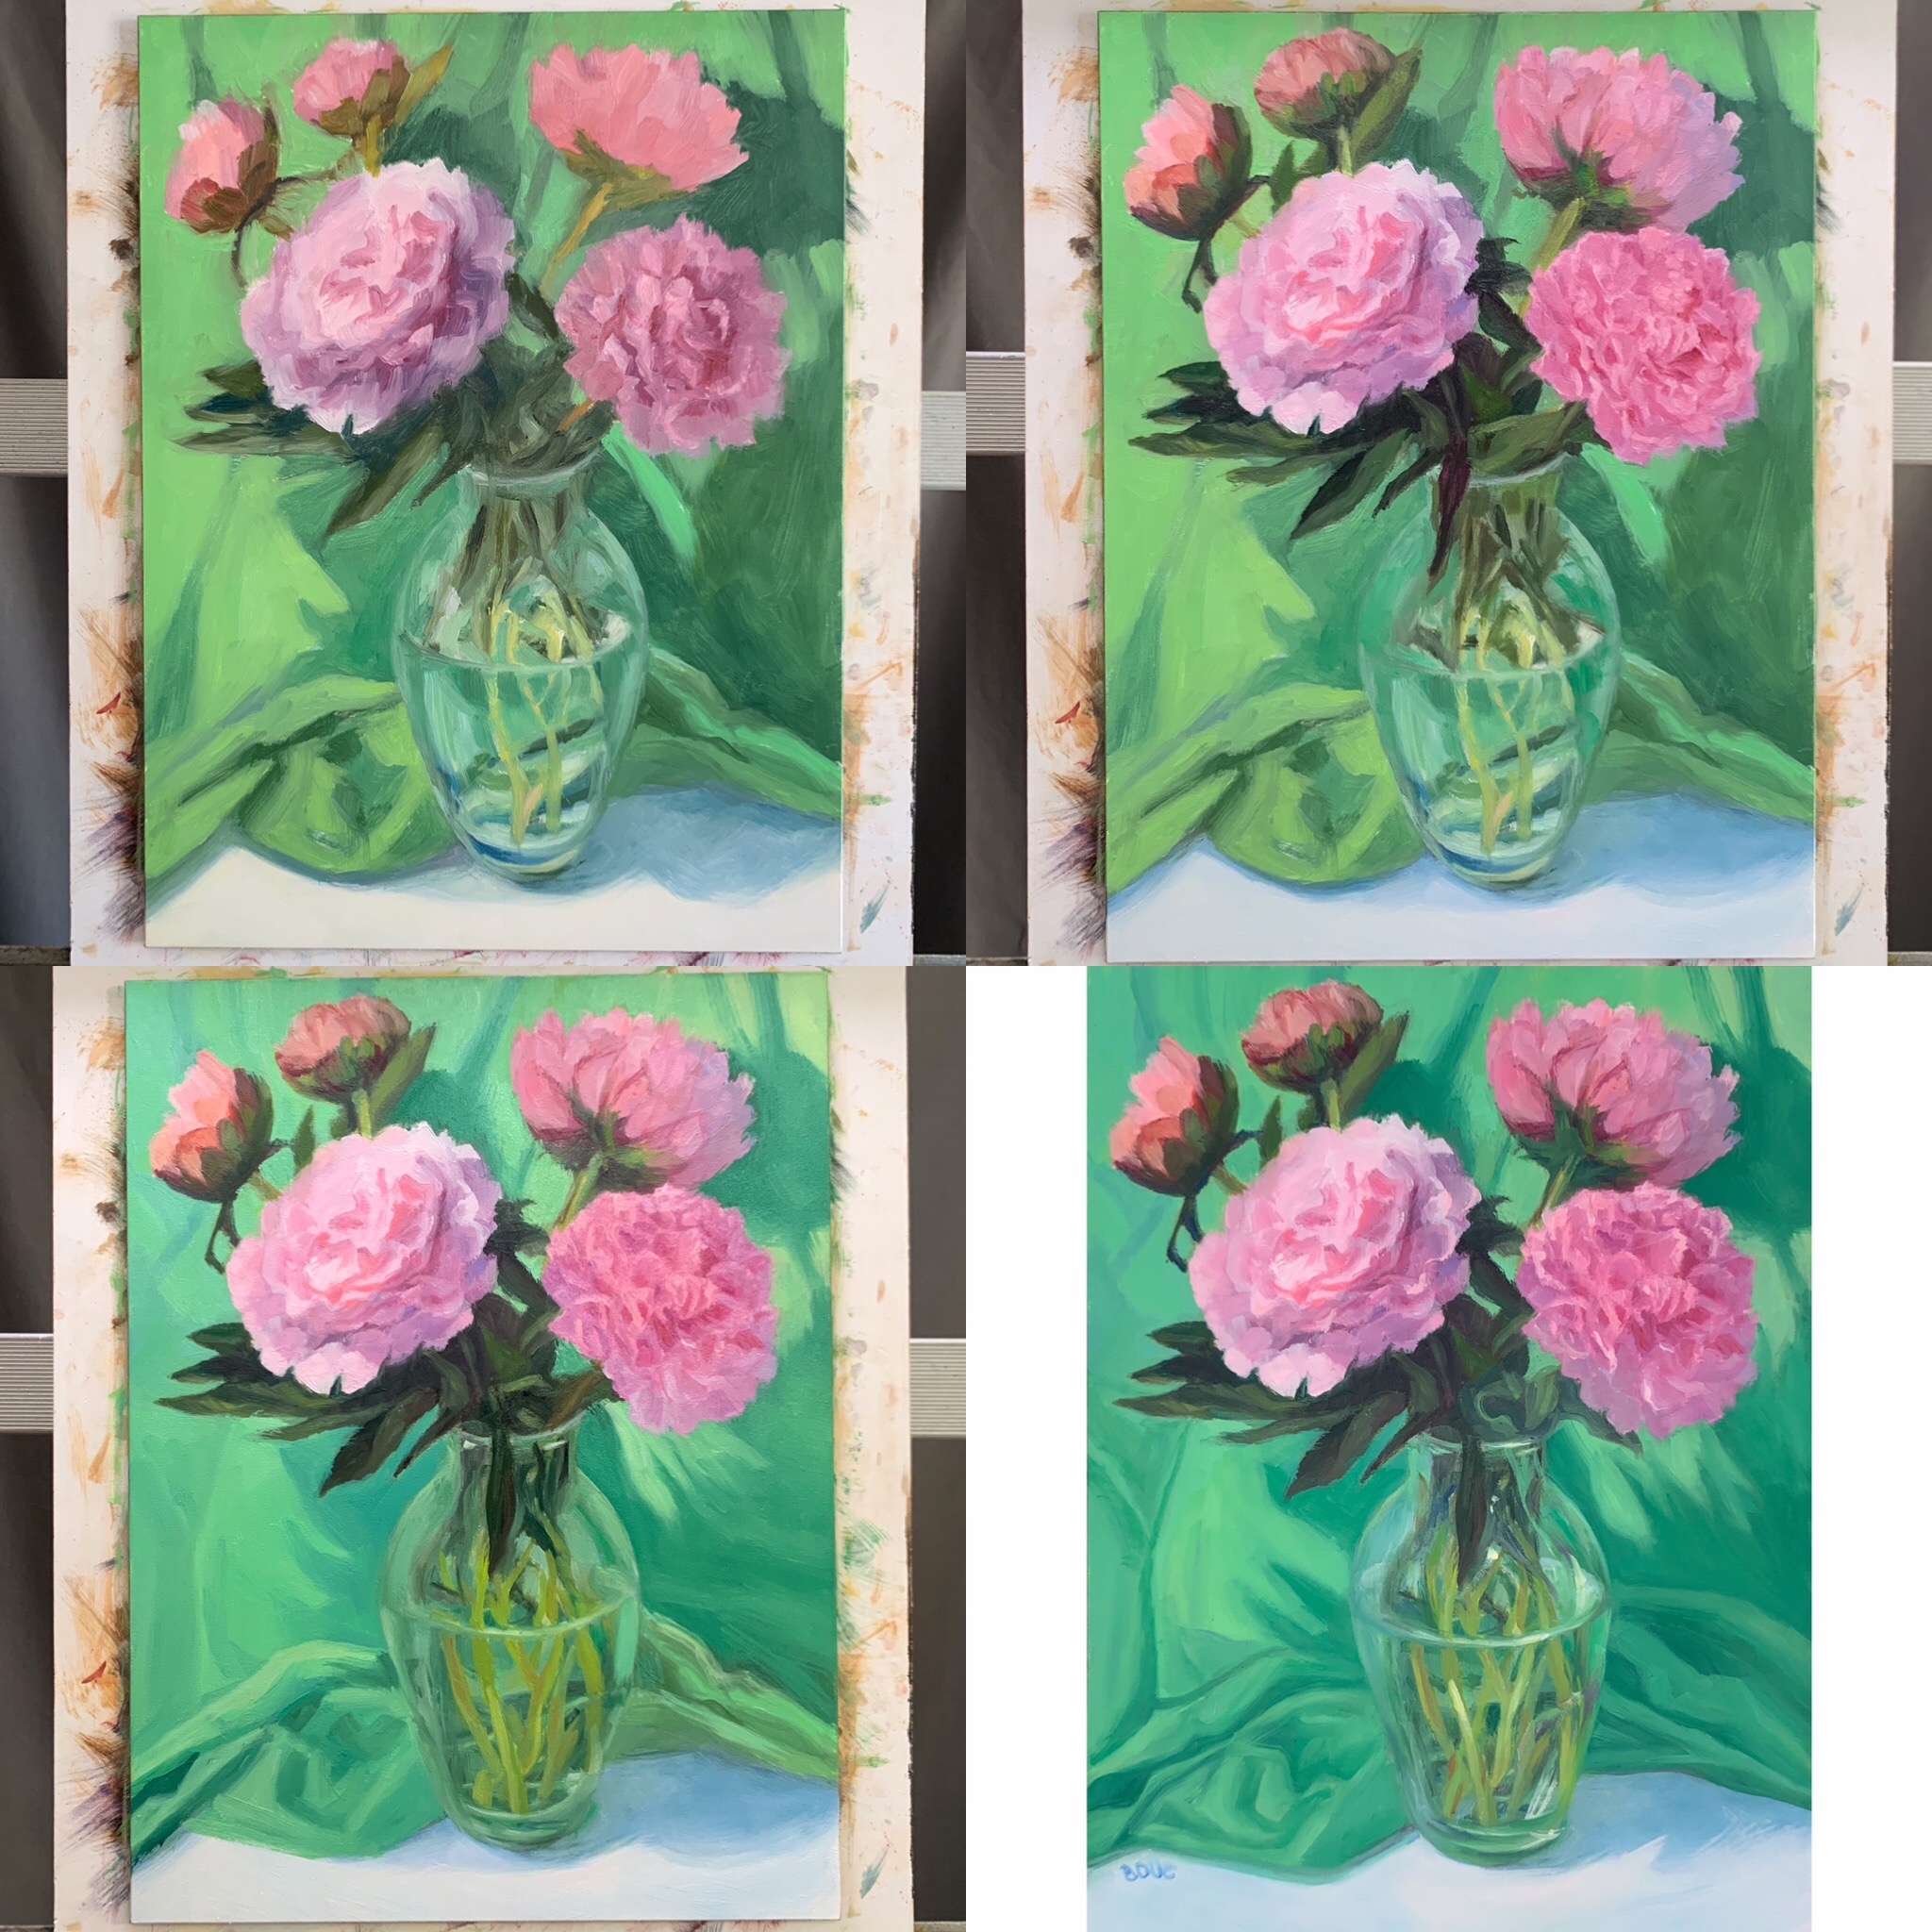 Working on the flowers then the background and the vase to strengthen shapes and values